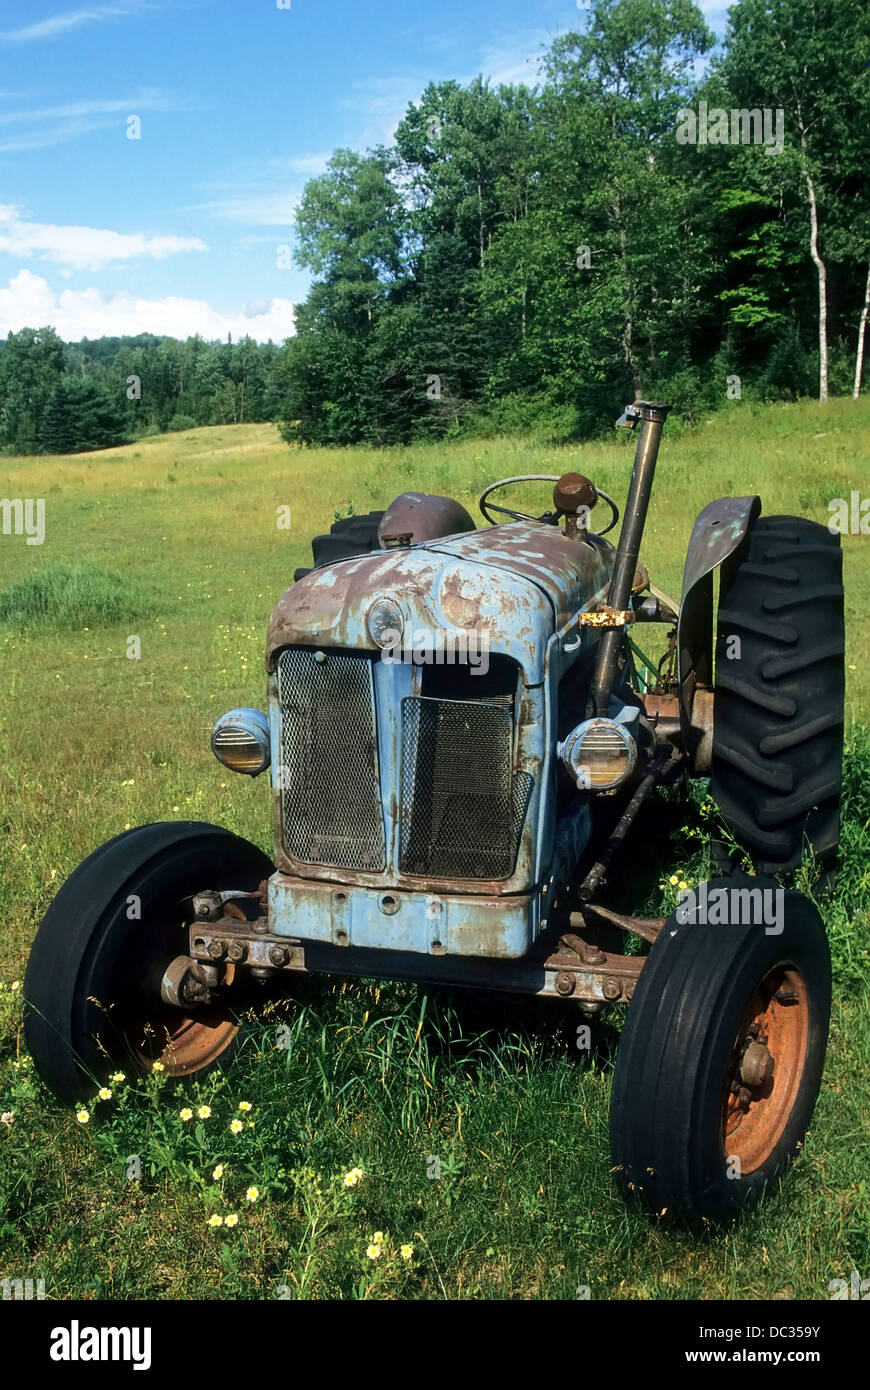 fordson tractor stockfotos fordson tractor bilder alamy. Black Bedroom Furniture Sets. Home Design Ideas